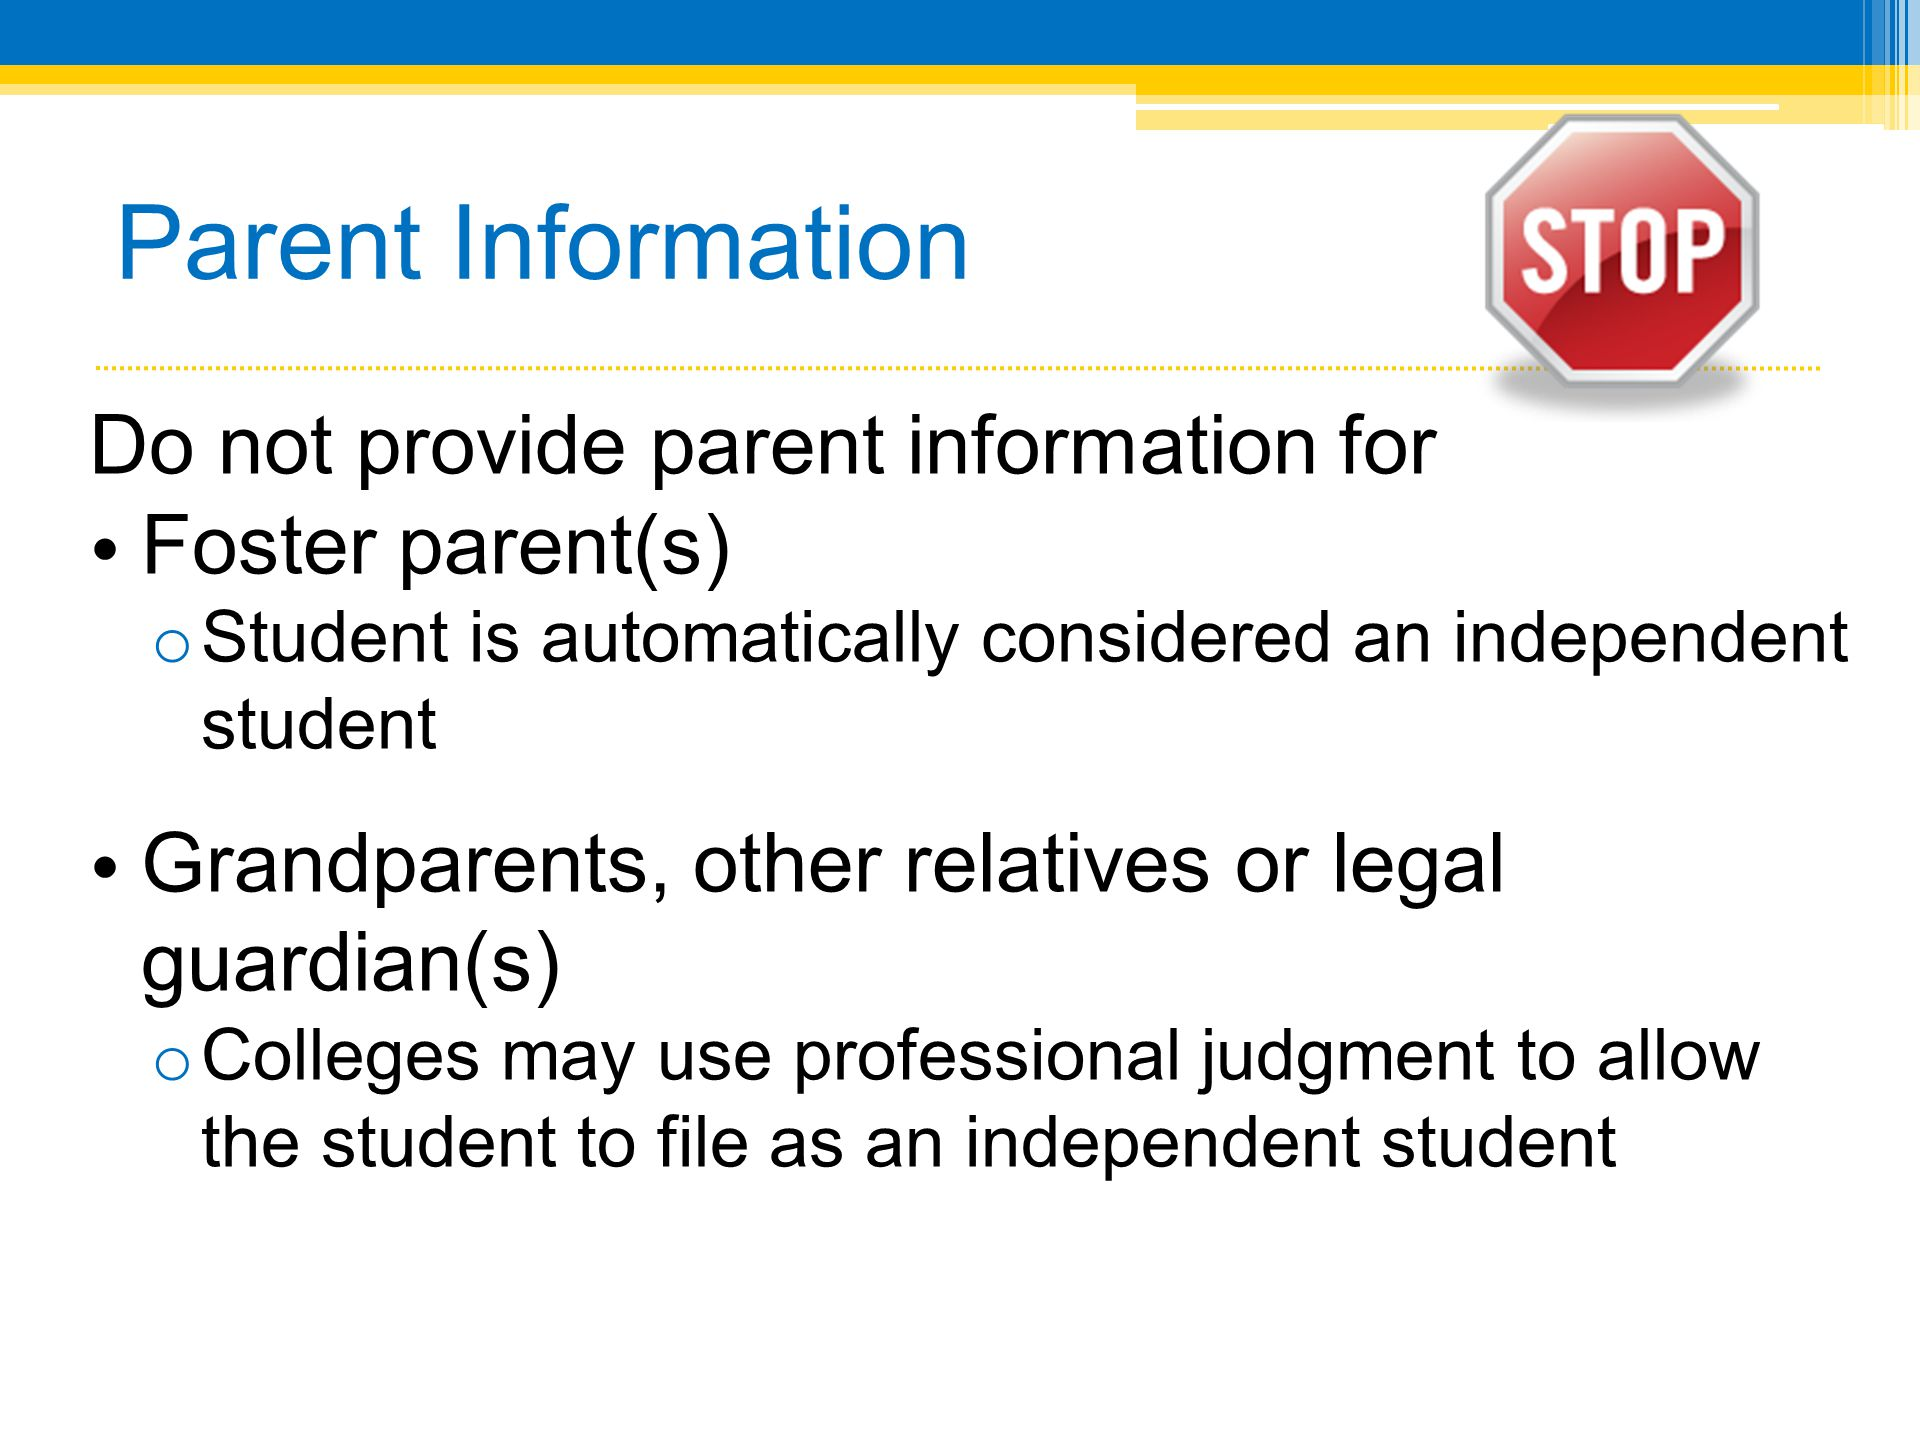 Parent Information Do not provide parent information for Foster parent(s) o Student is automatically considered an independent student Grandparents, other relatives or legal guardian(s) o Colleges may use professional judgment to allow the student to file as an independent student